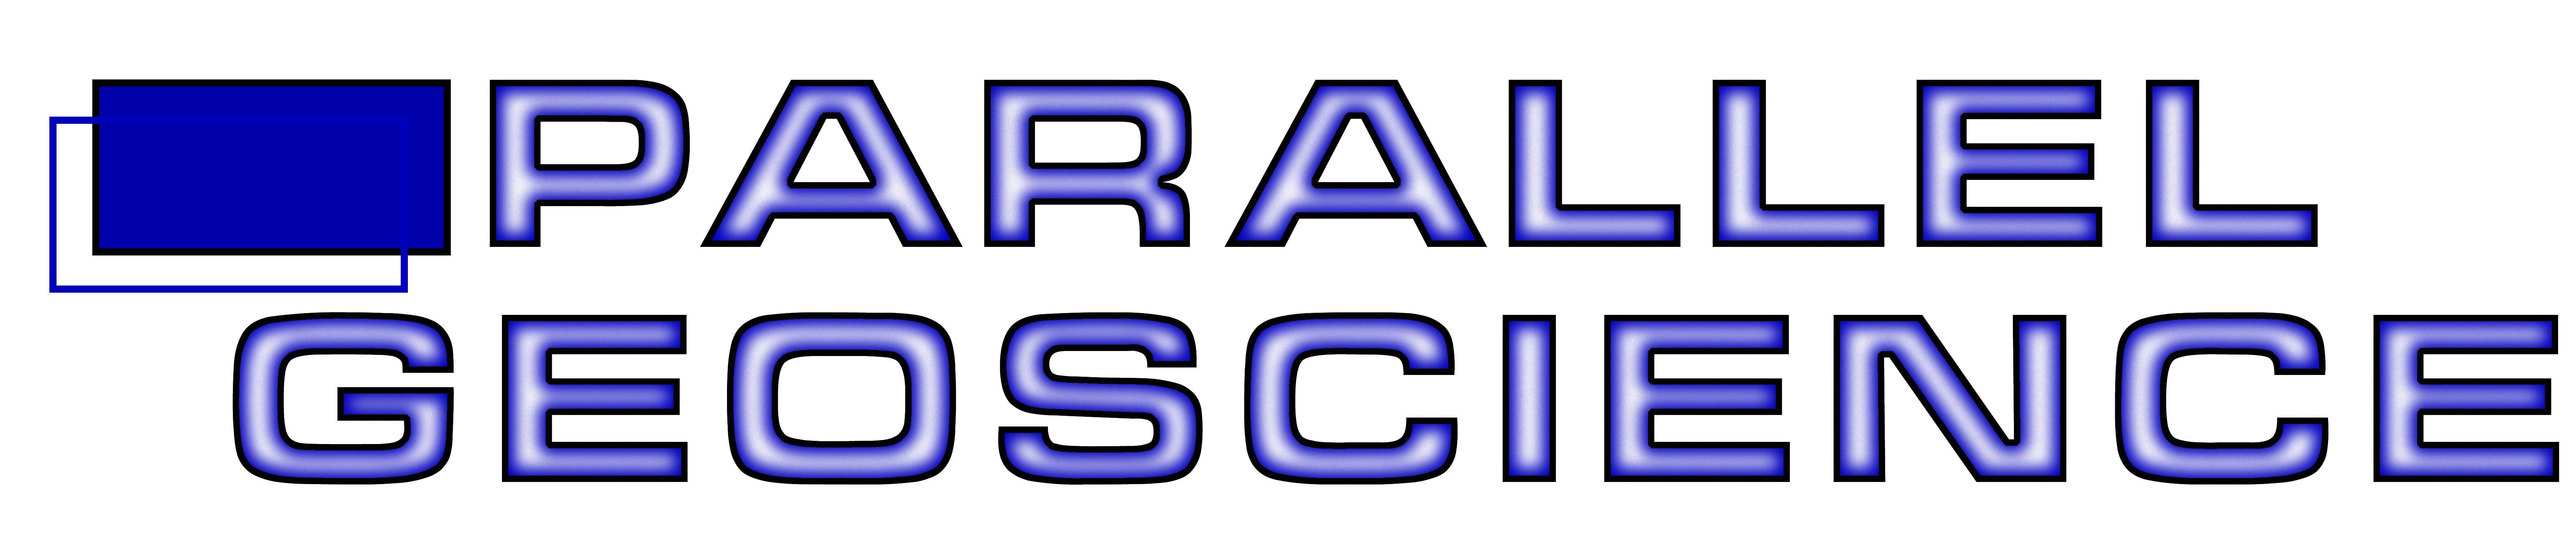 Parallel Geoscience logo